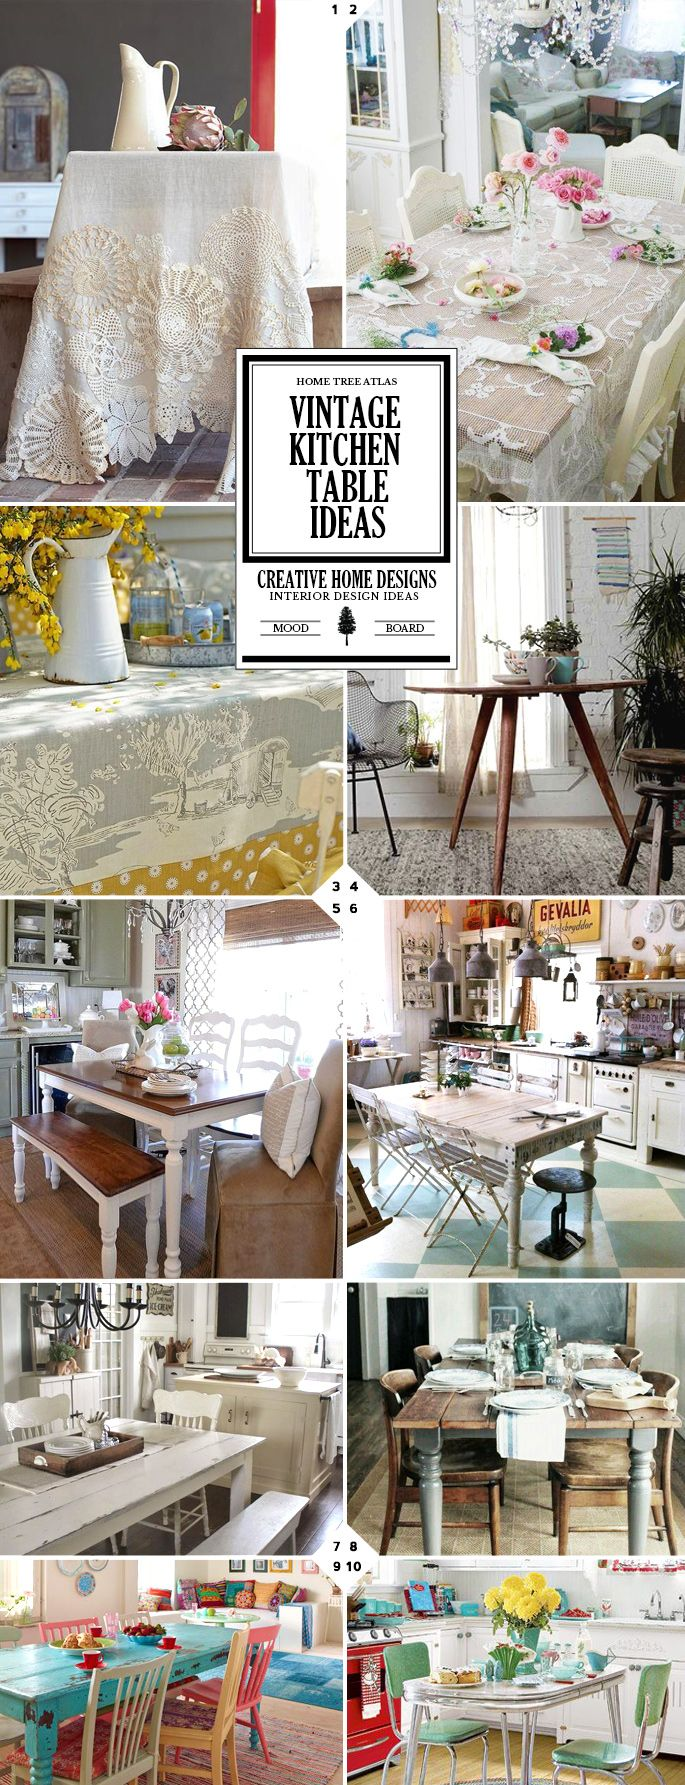 86 best vintage - home decor ideas images on pinterest | home